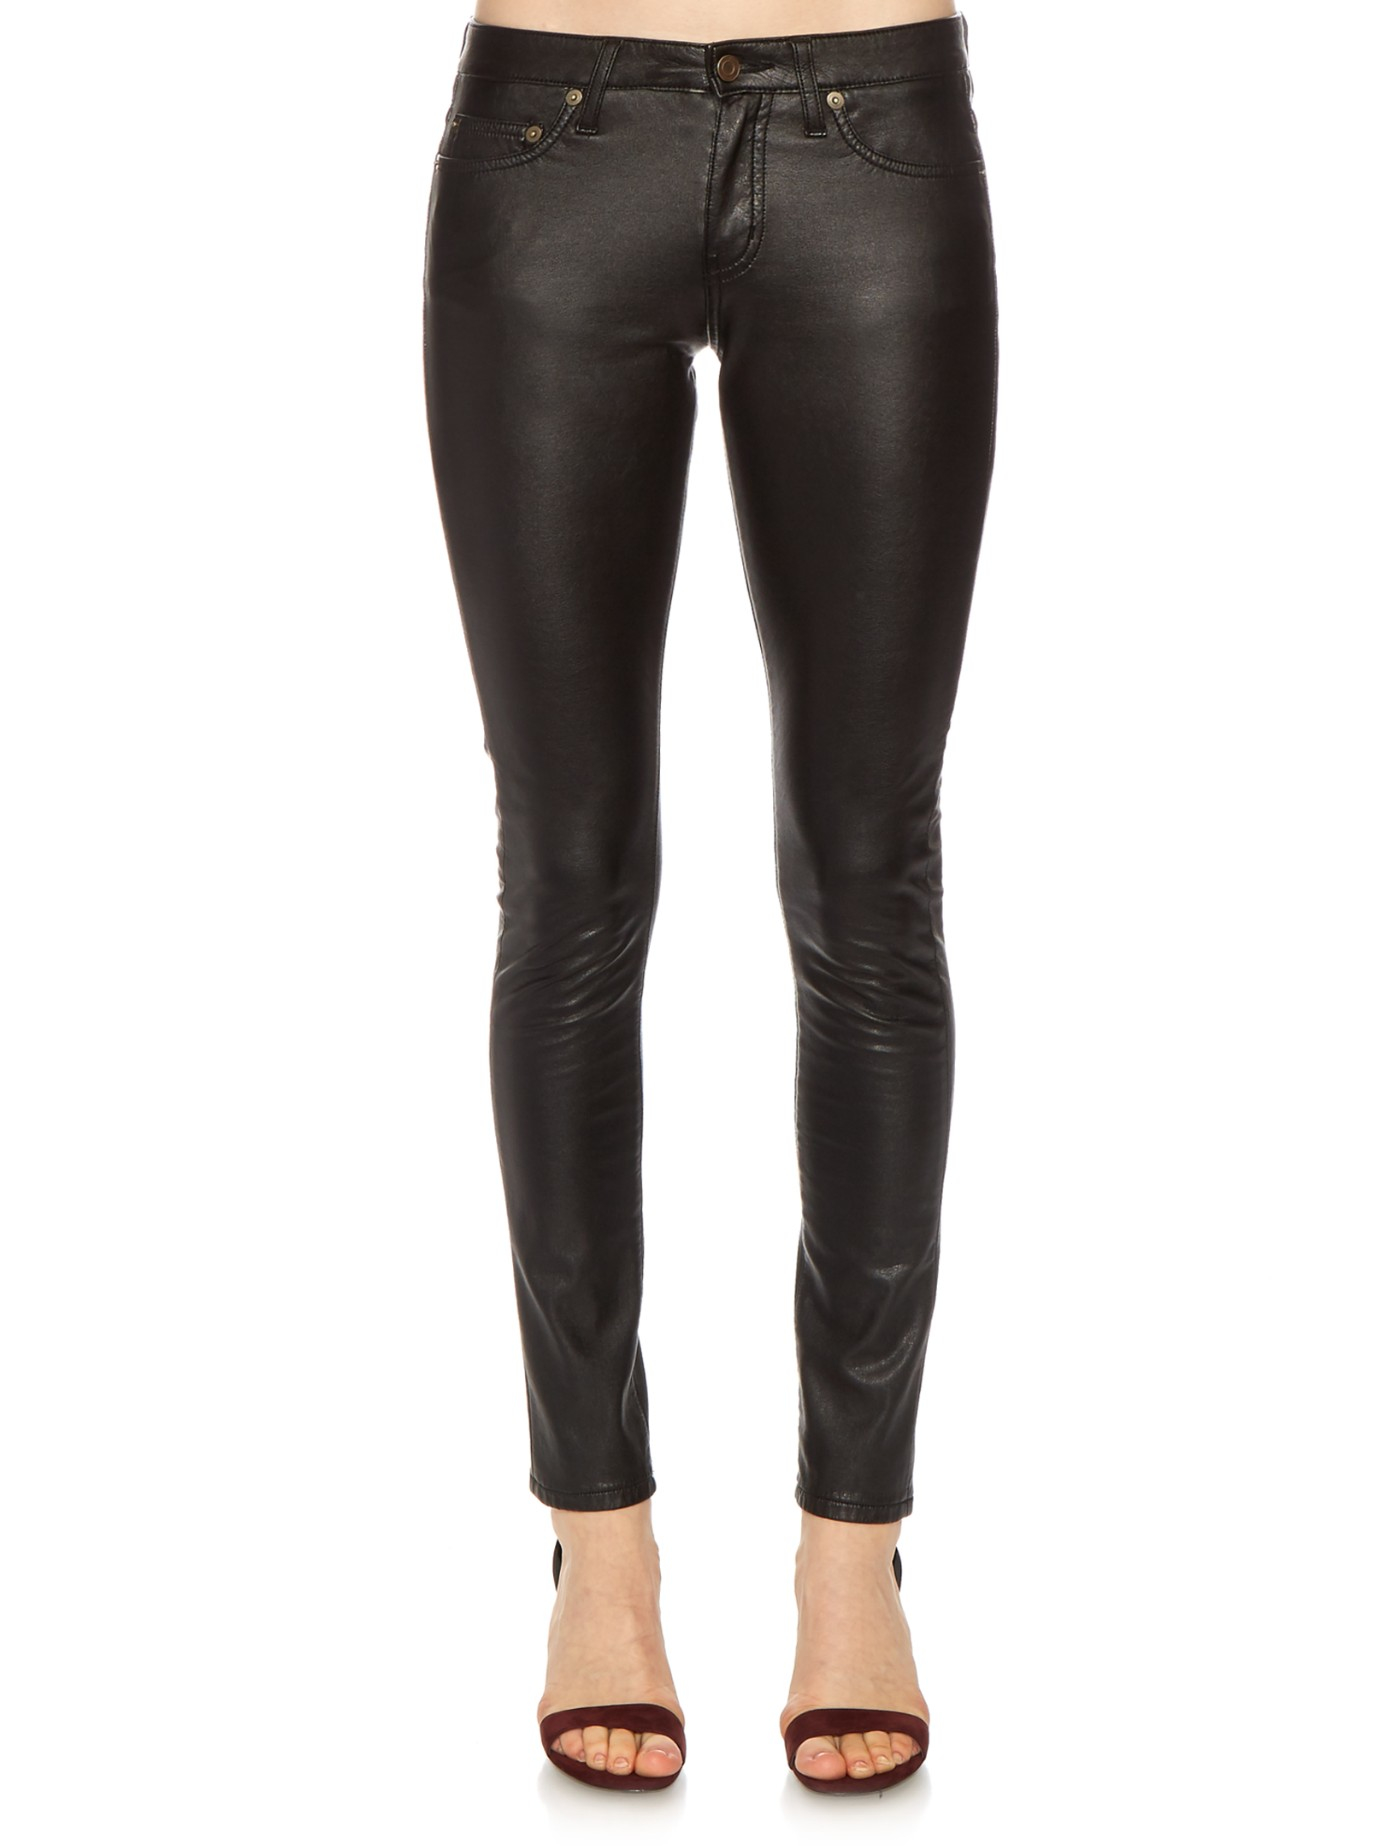 Harley Davidson Highland Contoured Low Rise Boot Cut Leather Pants VW Brand New · Harley-Davidson · $ or Best Offer +$ shipping. SPONSORED. Low Rise Leather Pants Side Cut Outs Chain Detail Back Zipper Closure L Brand New. $ Buy It .